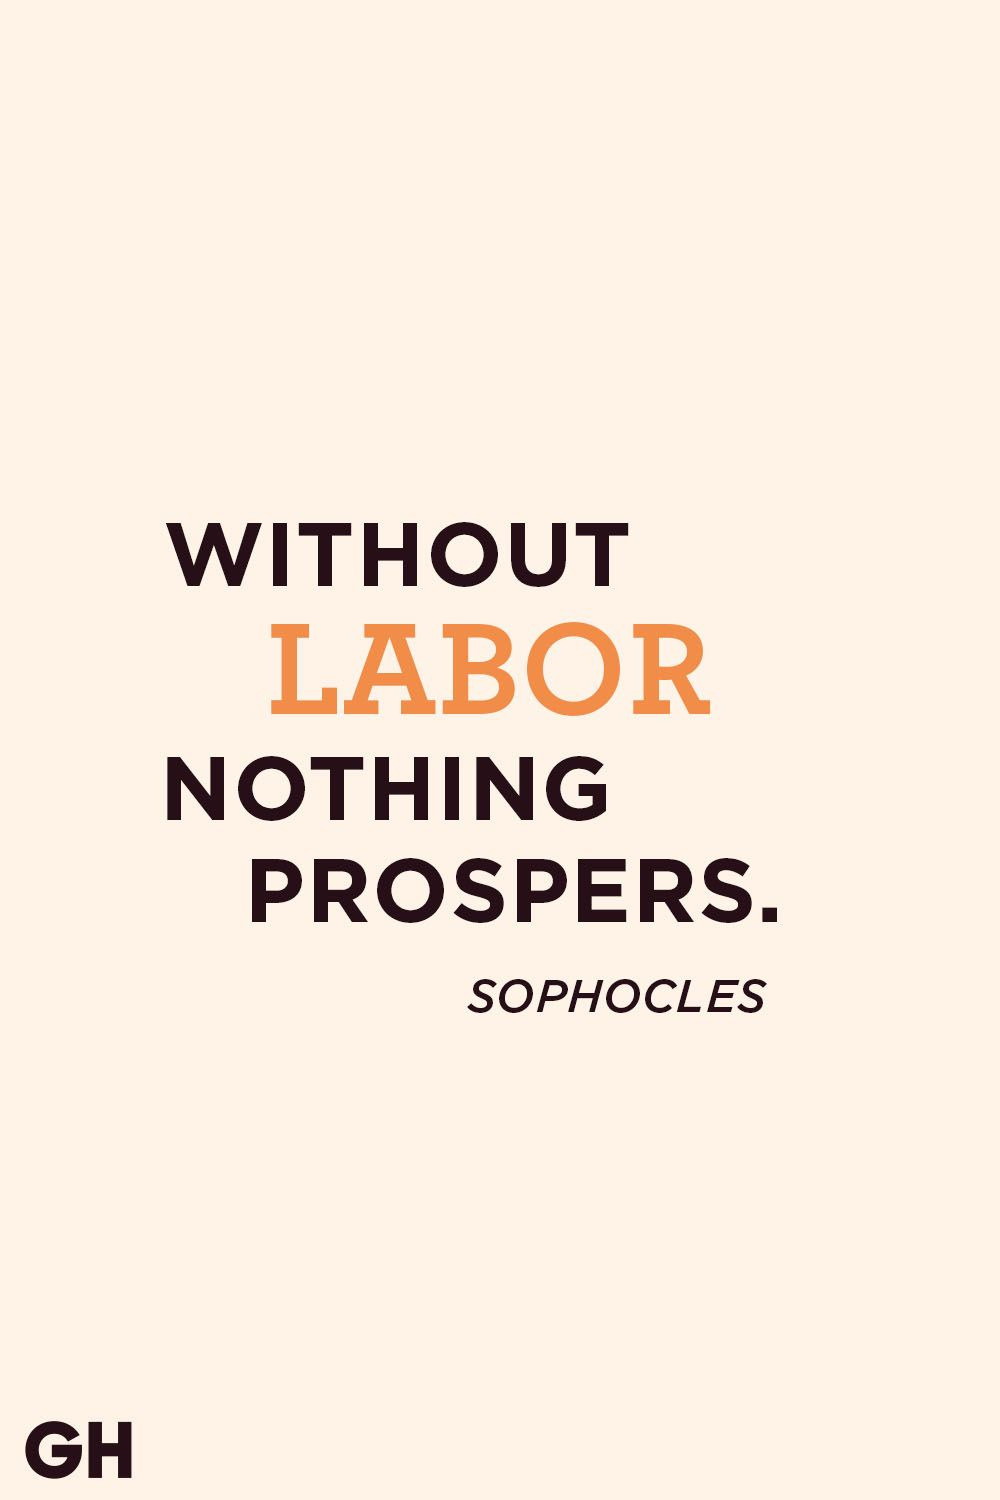 sophocles labor day quote